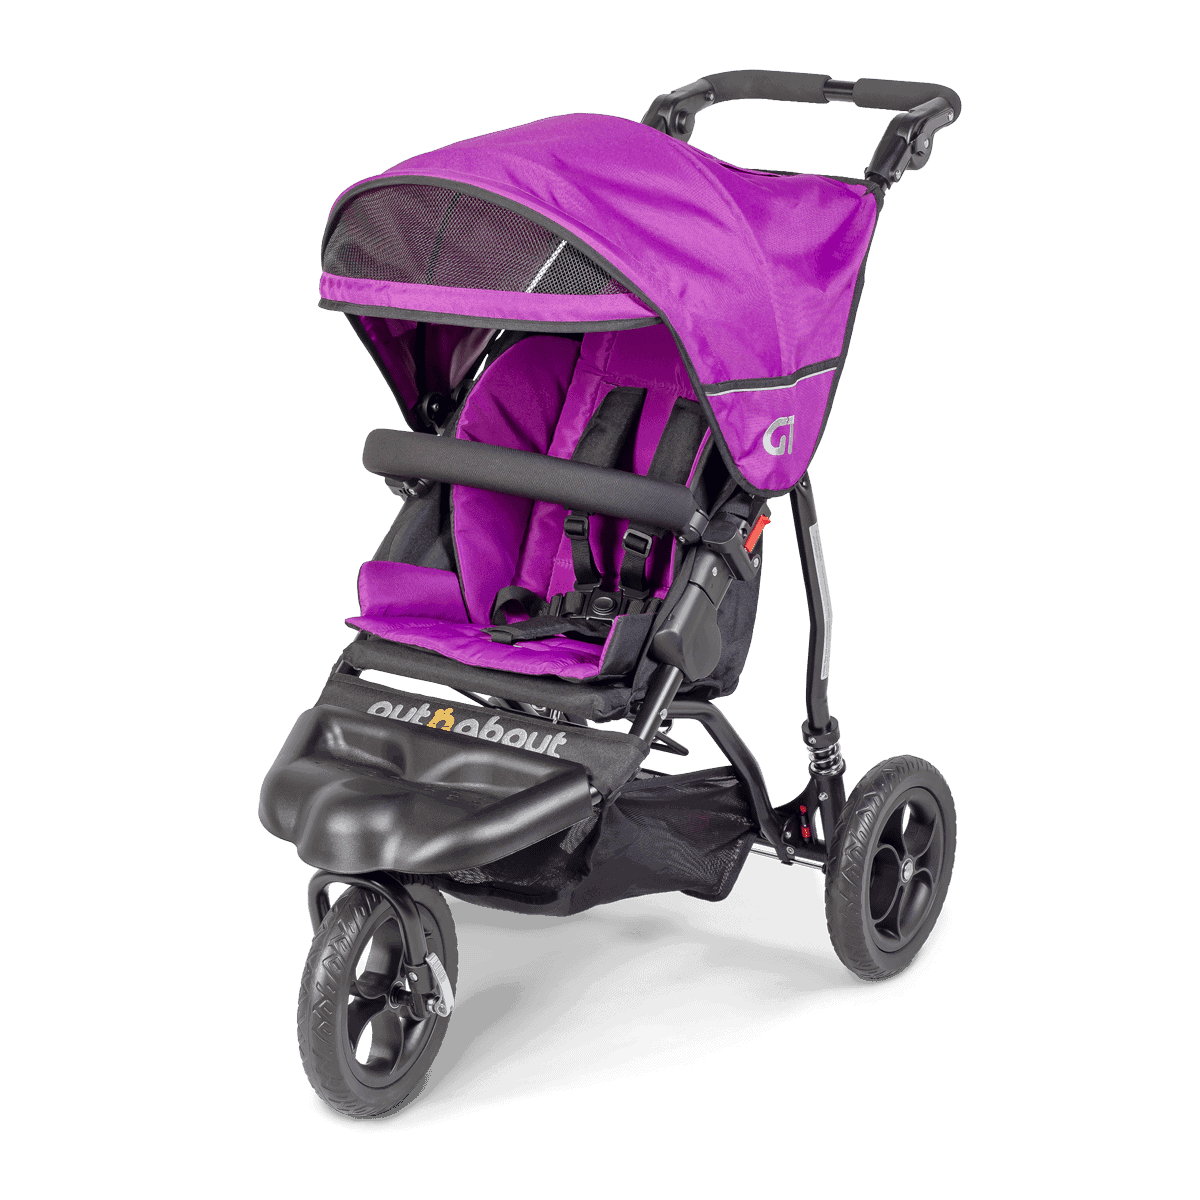 Out'n'About GT Buggy in Purple Punch - with sunhood visor